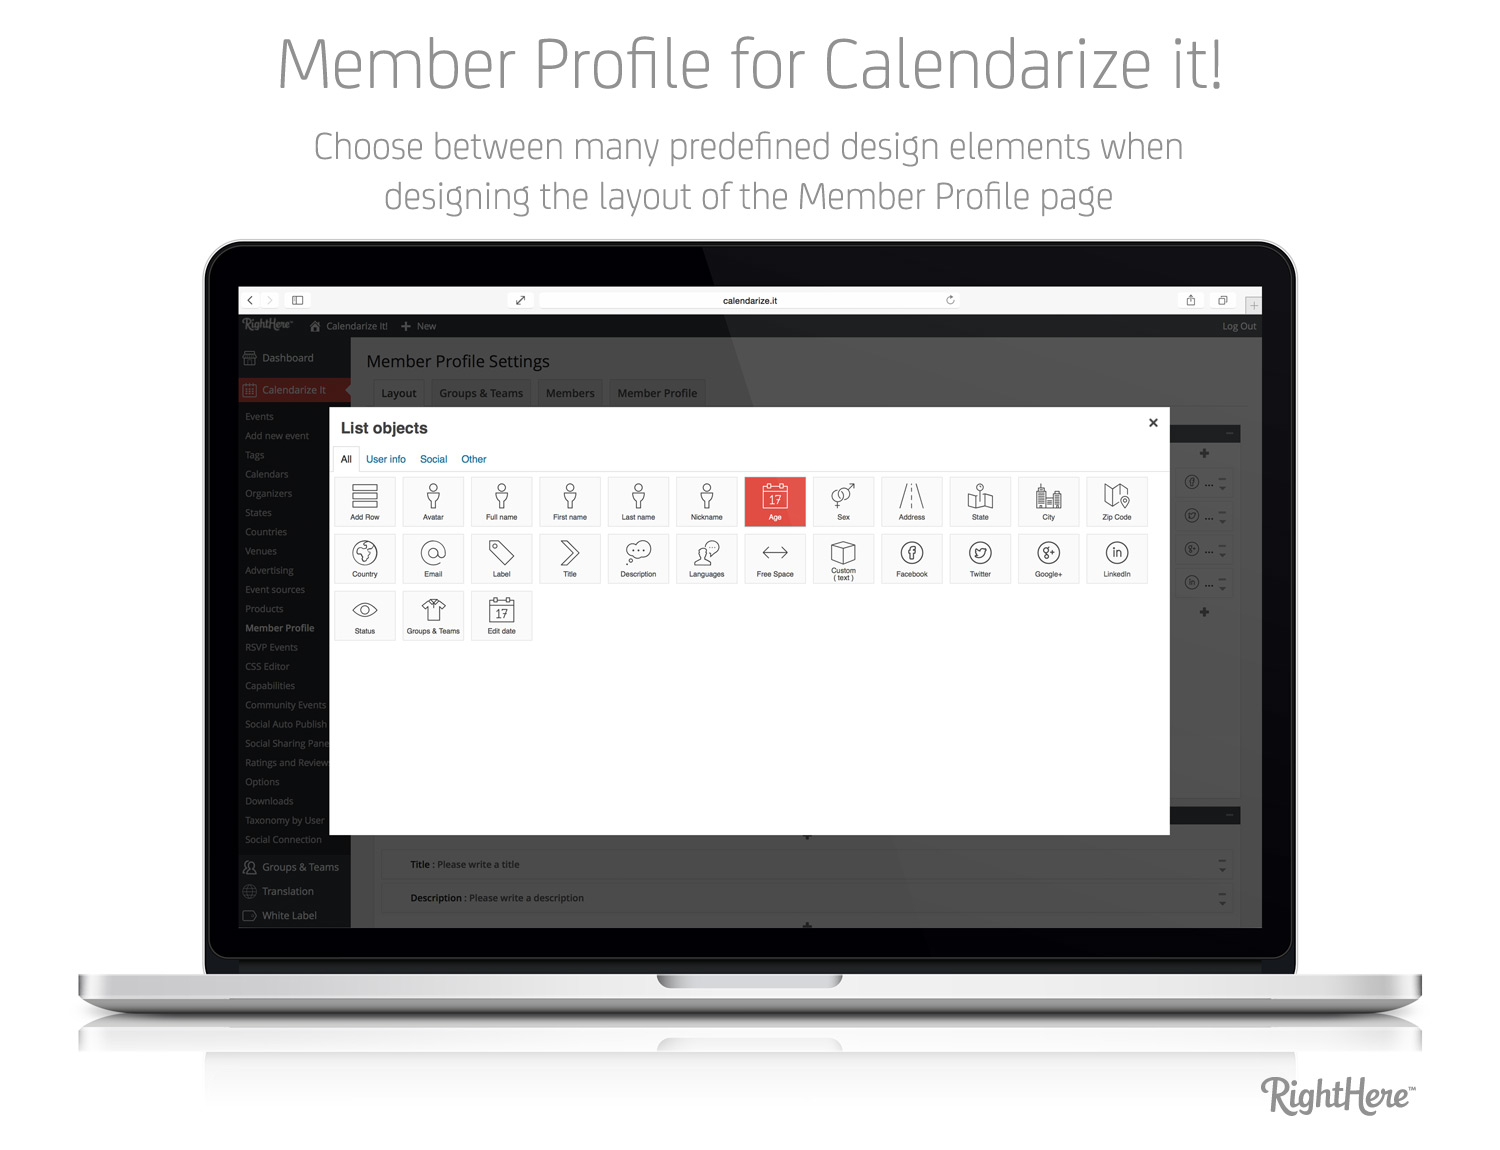 Member Profile for Calendarize it! - Choose between many predefined design elements when designing the layout of the Member Profile page